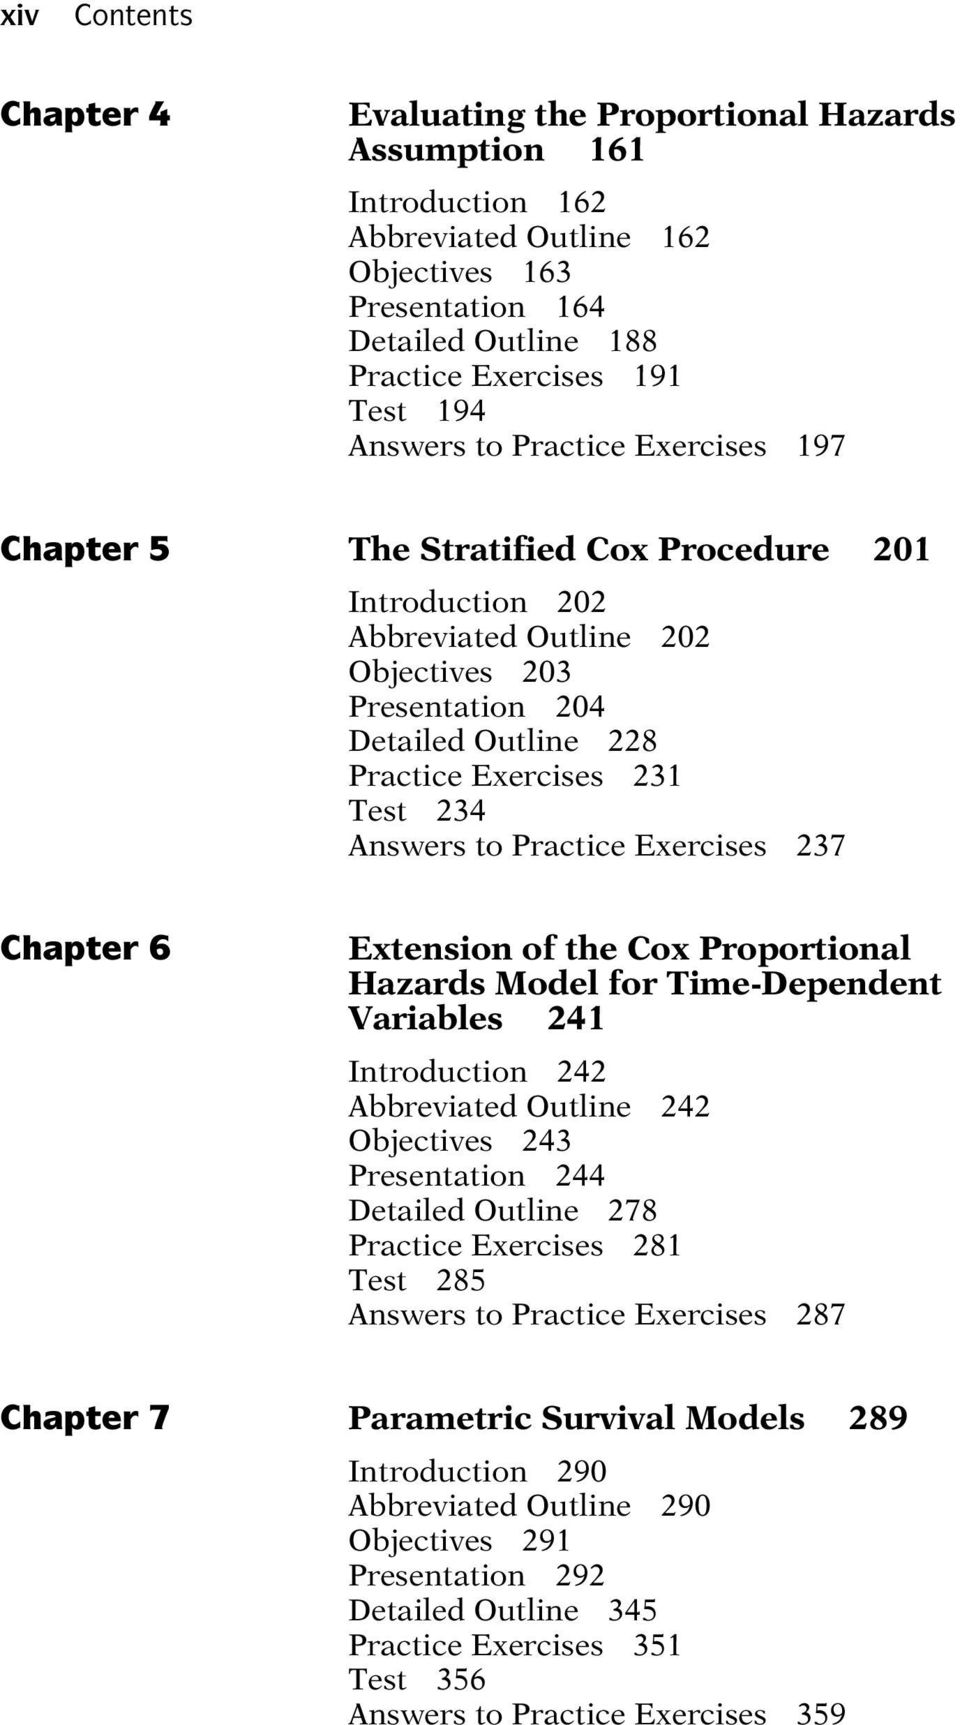 234 Answers to Practice Exercises 237 Chapter 6 Extension of the Cox Proportional Hazards Model for Time-Dependent Variables 241 Introduction 242 Abbreviated Outline 242 Objectives 243 Presentation